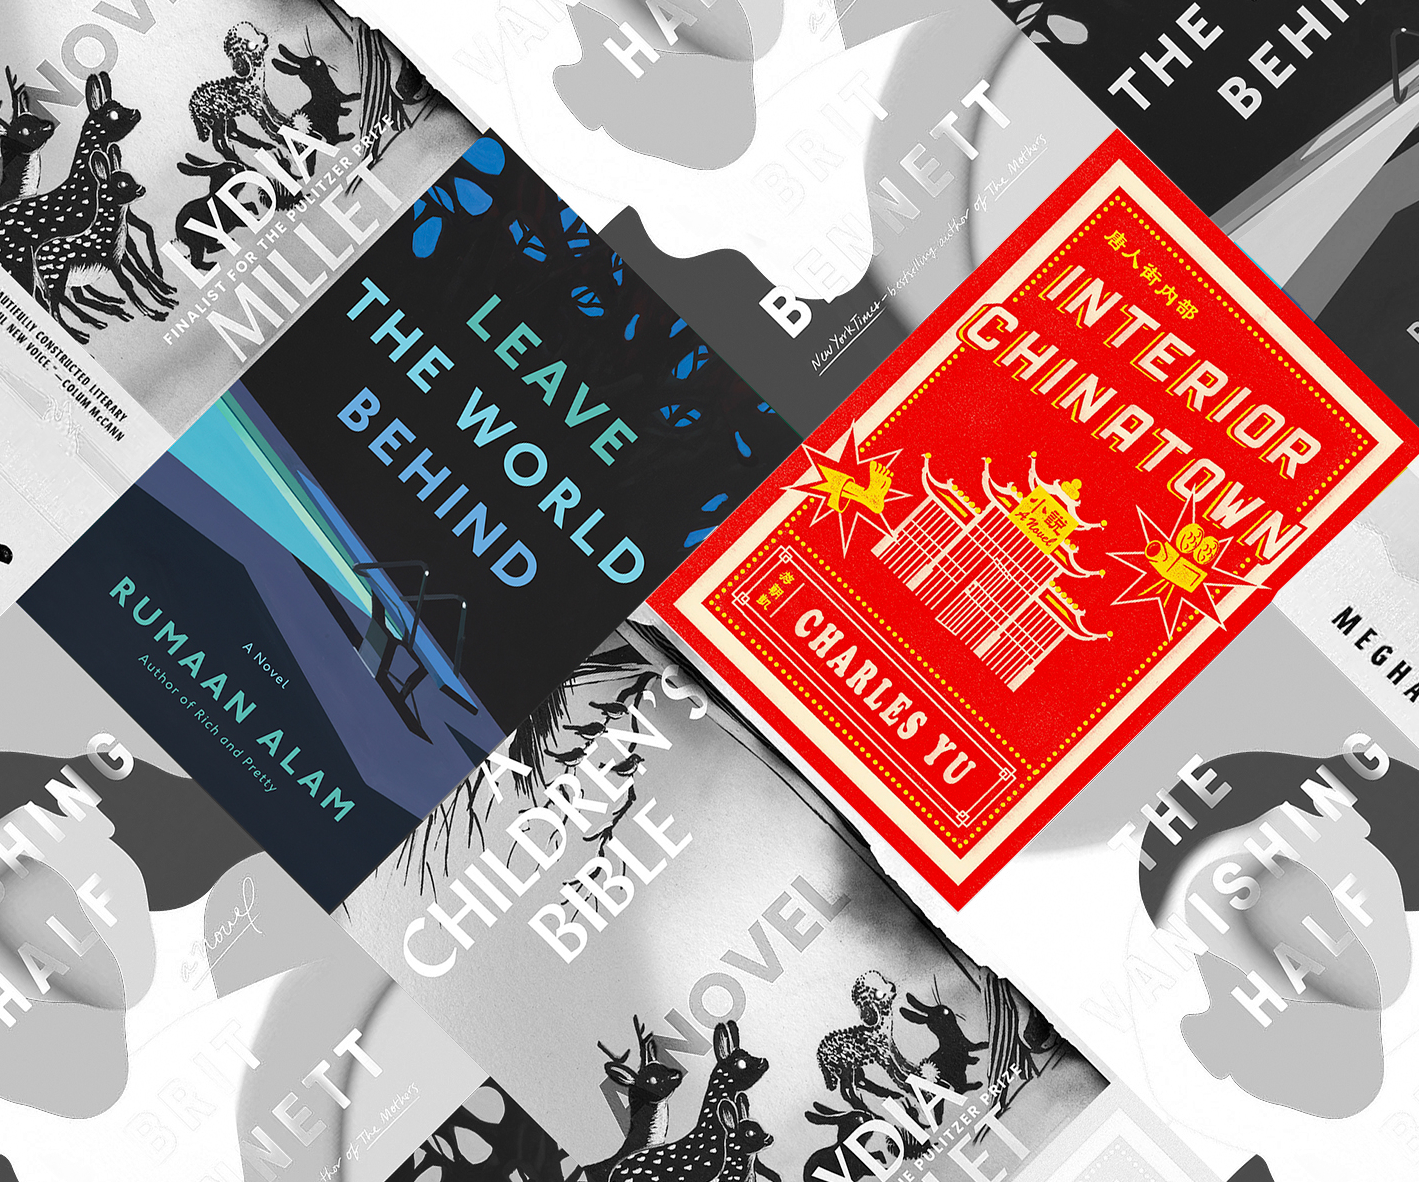 CONTRIBUTORS FINALISTS FOR NATIONAL BOOK AWARD